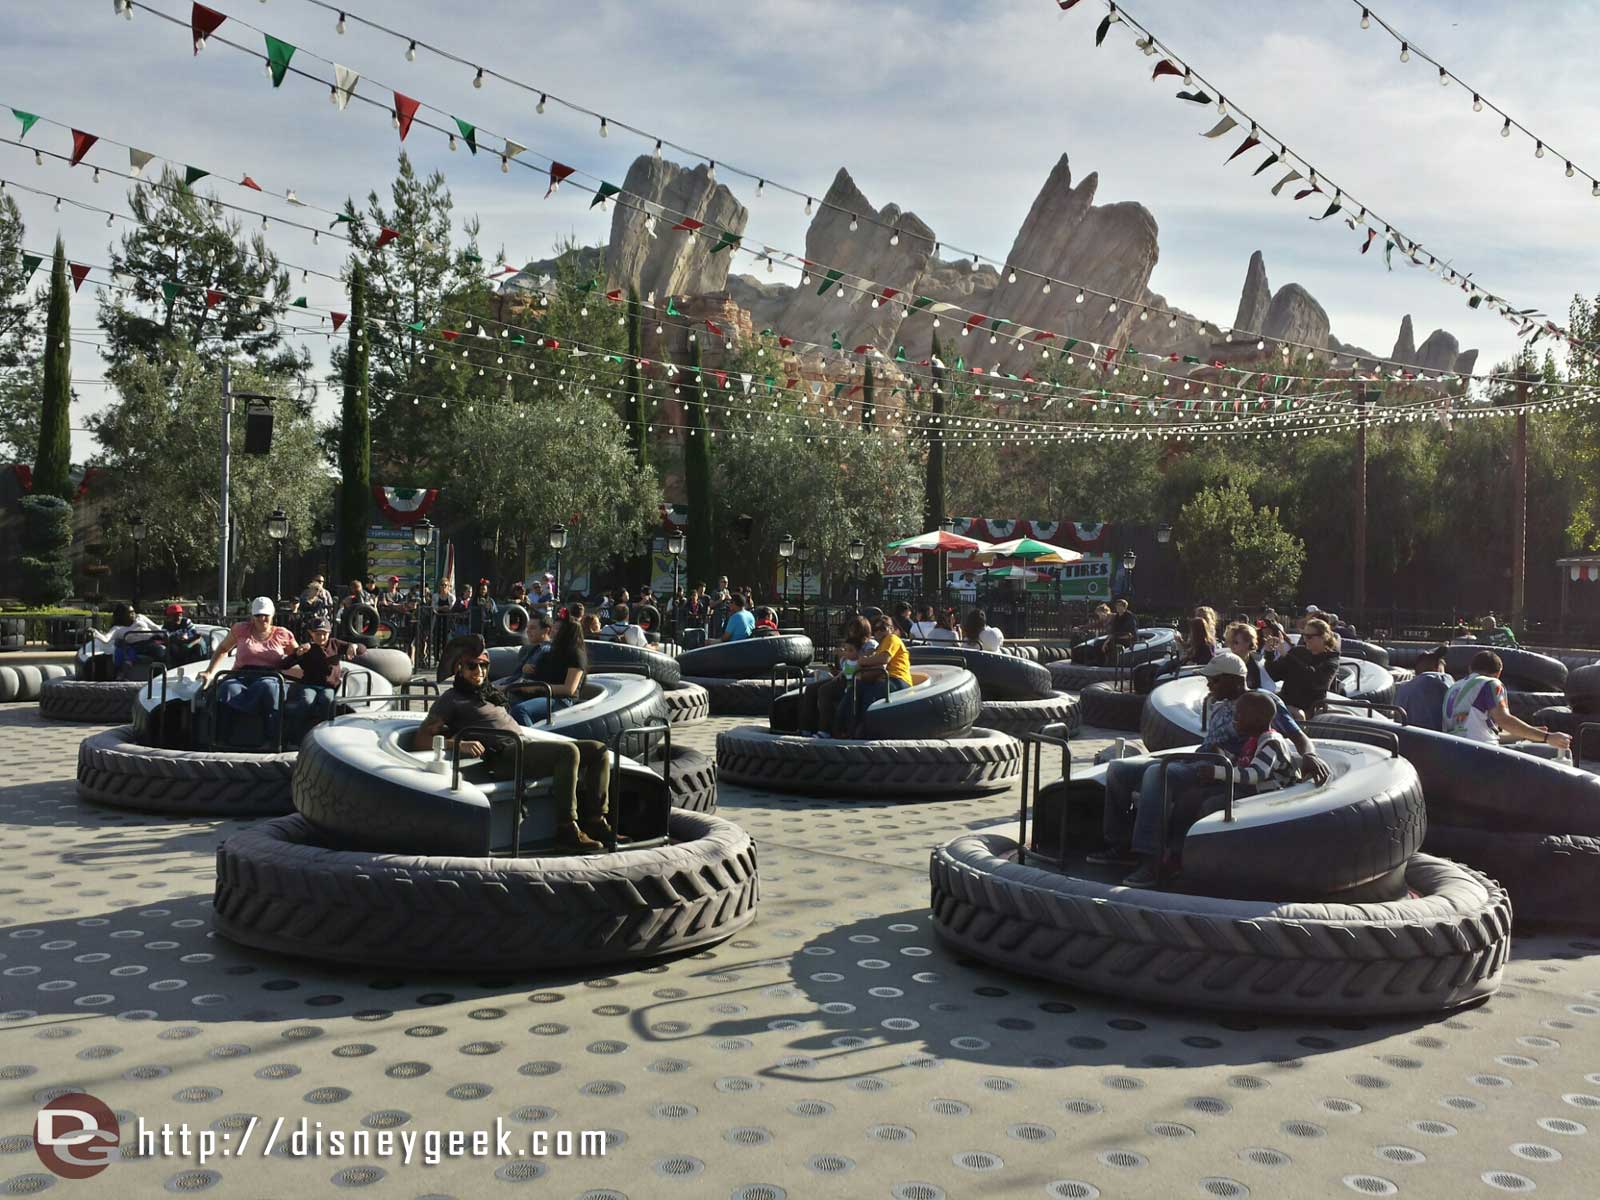 Only a few more weeks to enjoy the flying tires #CarsLand